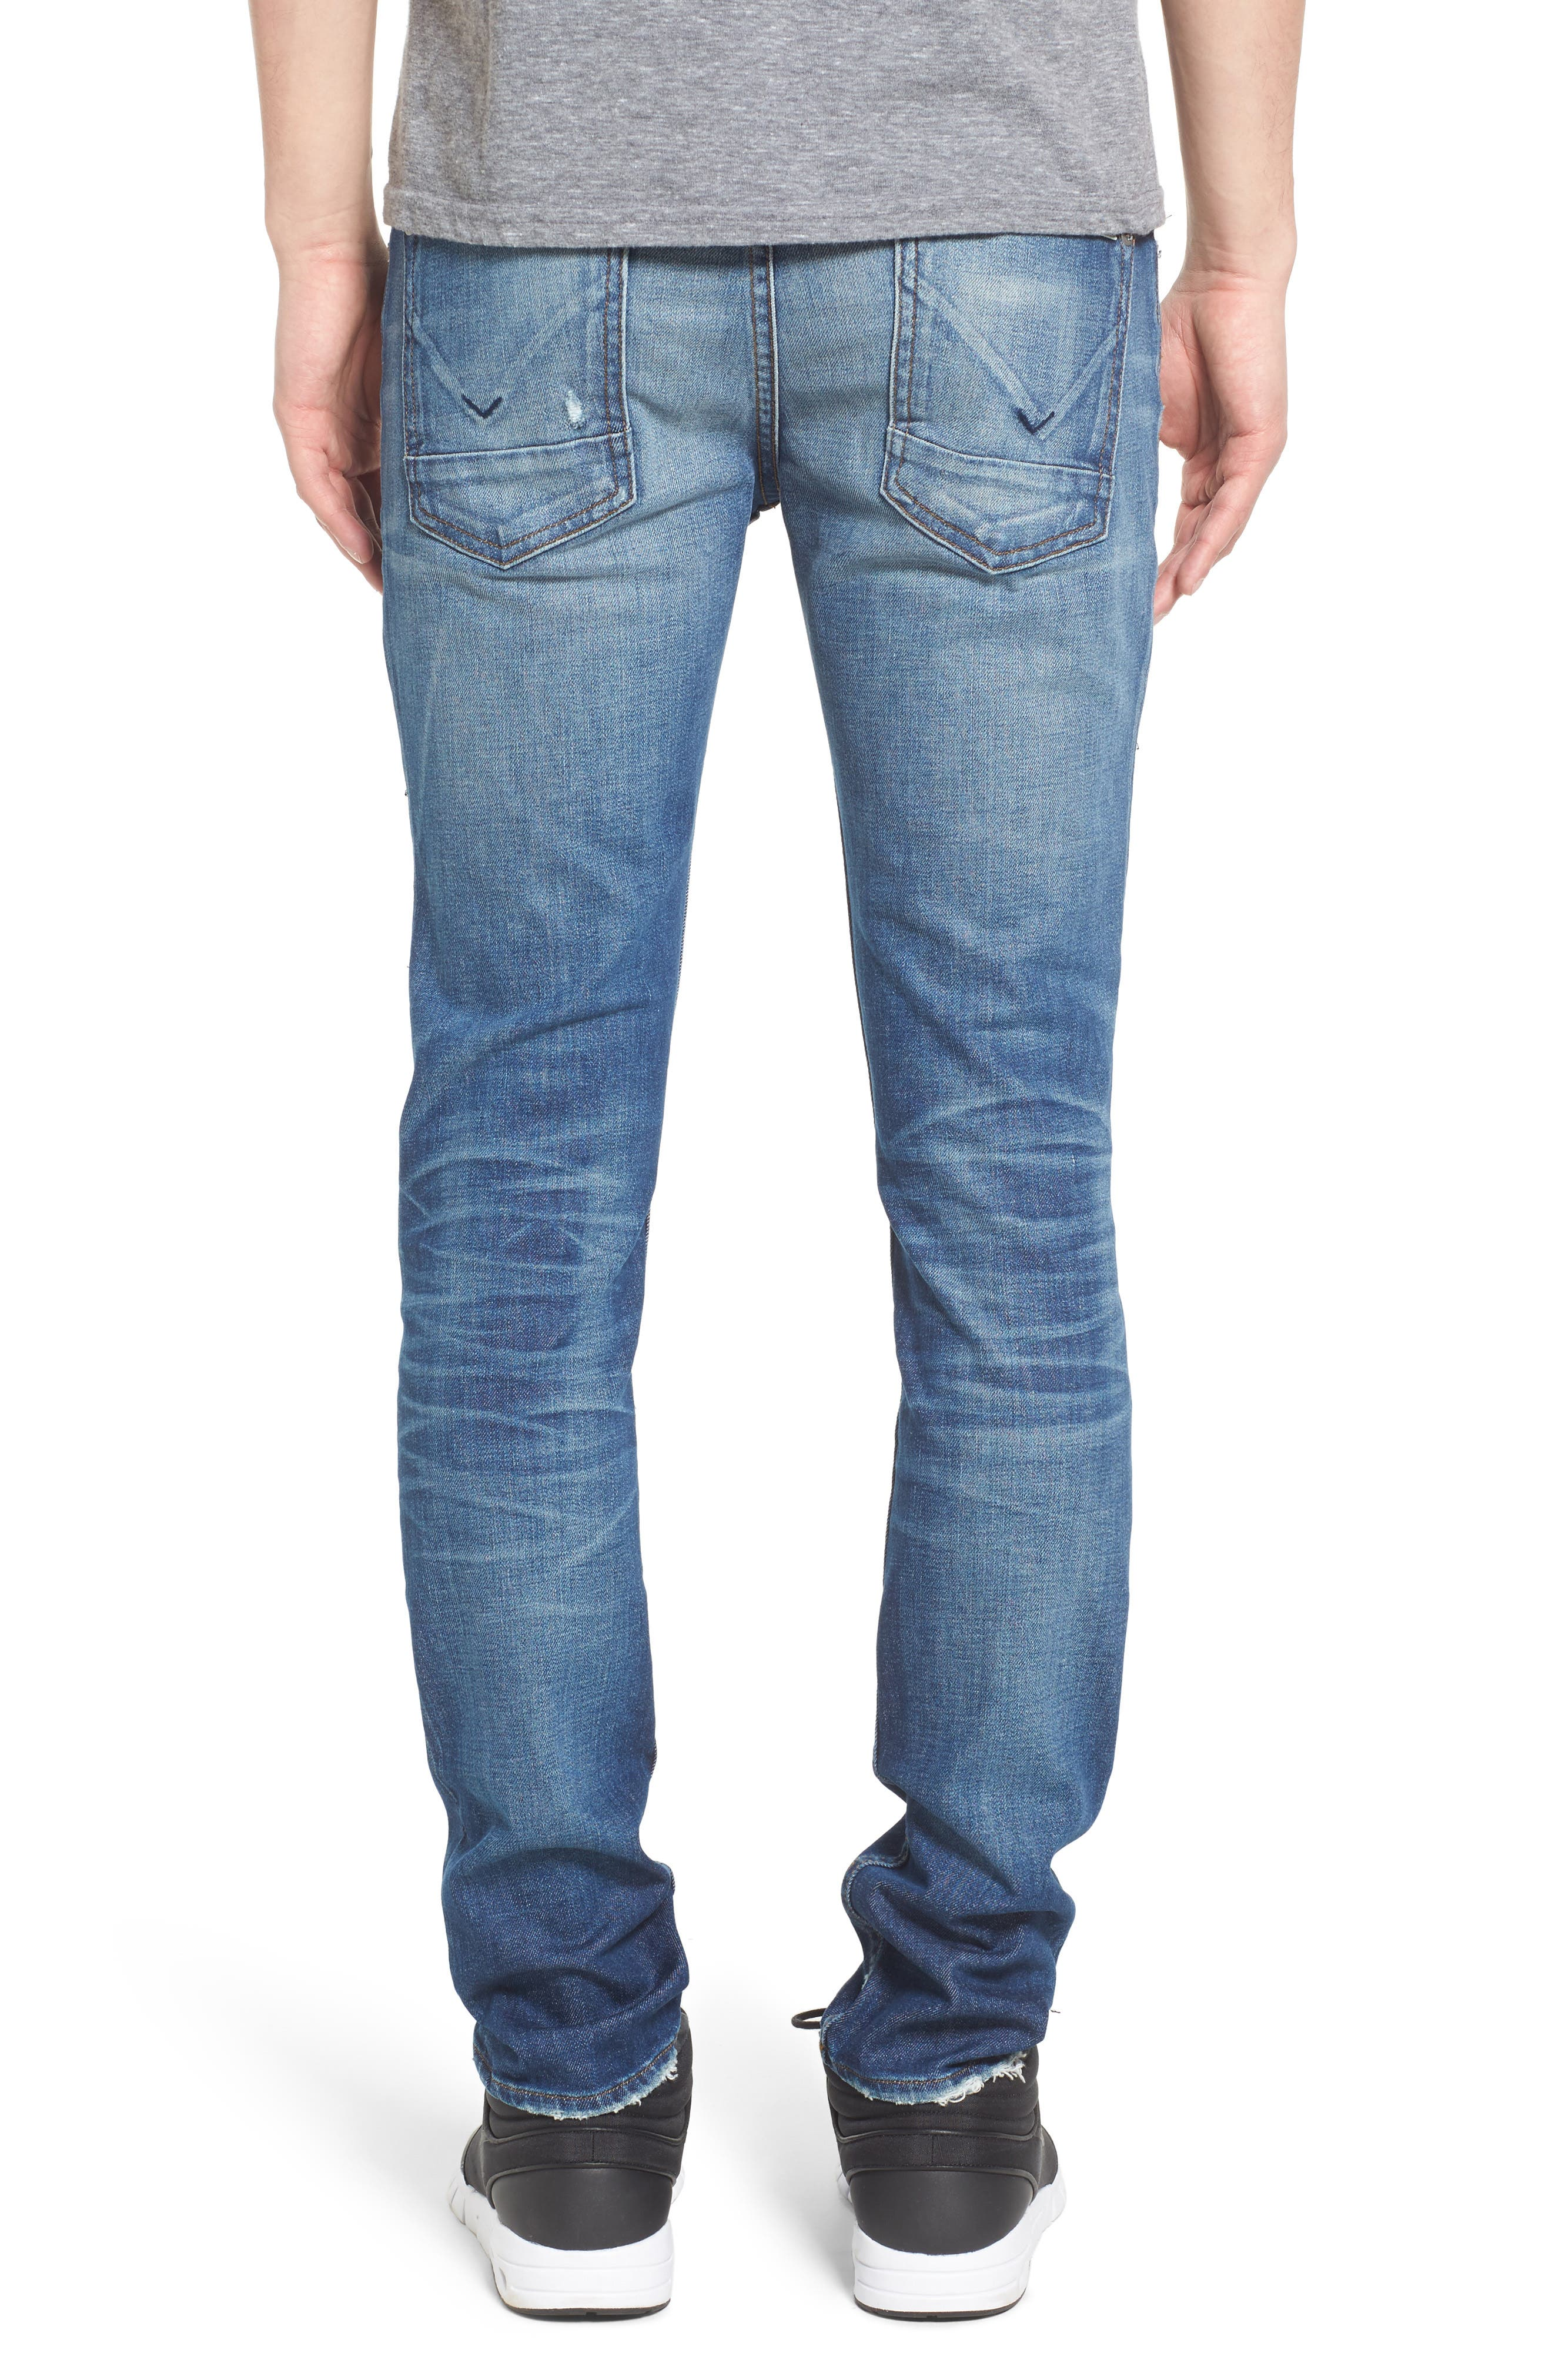 Axl Skinny Fit Jeans,                             Alternate thumbnail 2, color,                             422